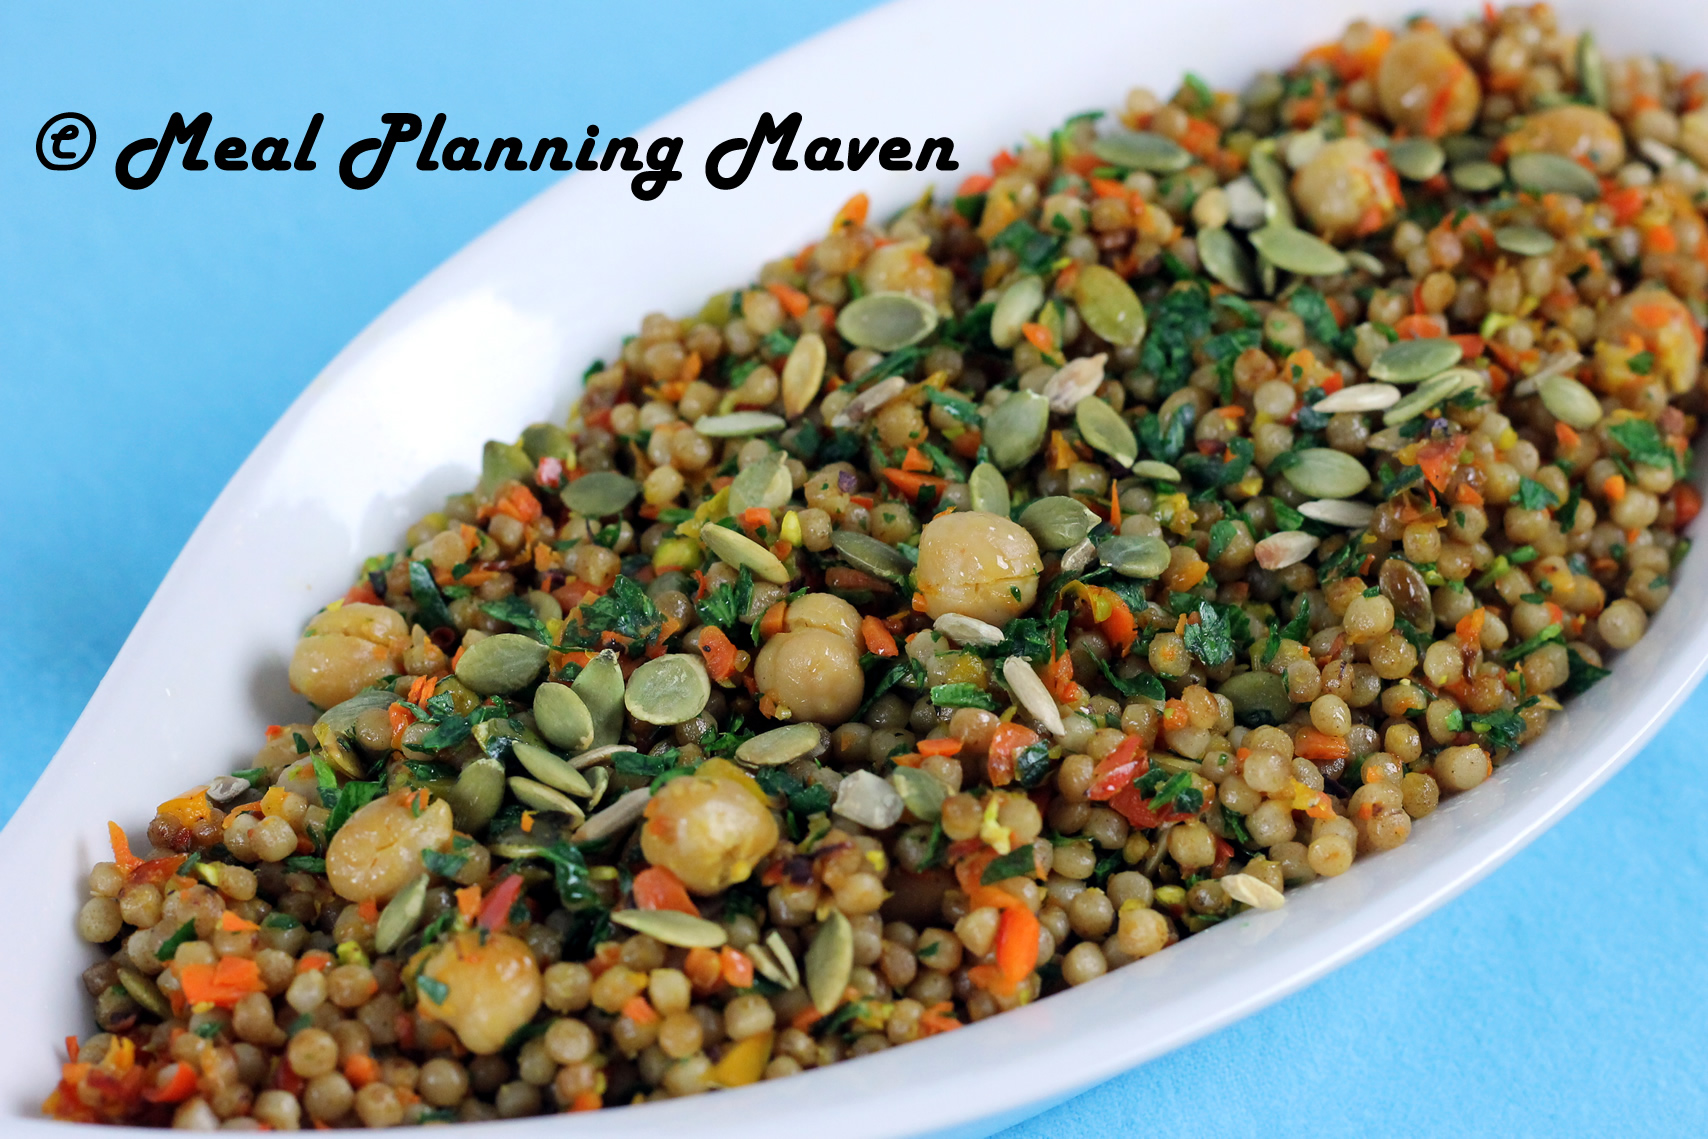 Israeli Couscous with Chickpeas 'n Veggies